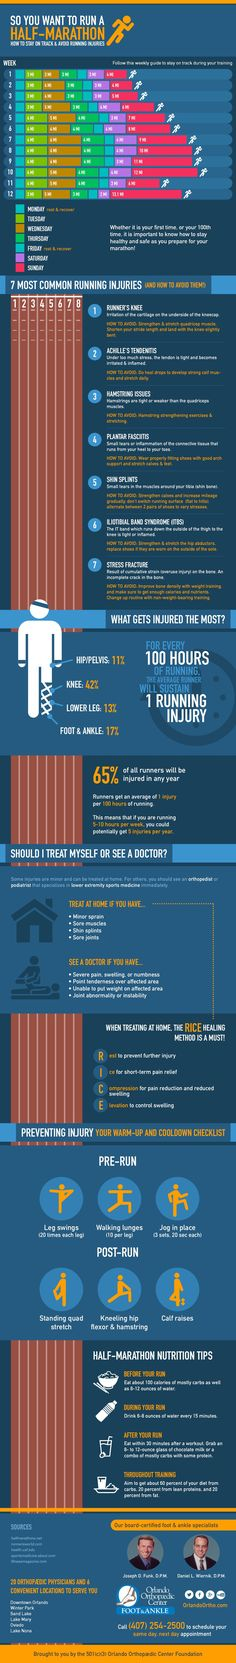 Half Marathon Training and Running Injury Prevention Infographic